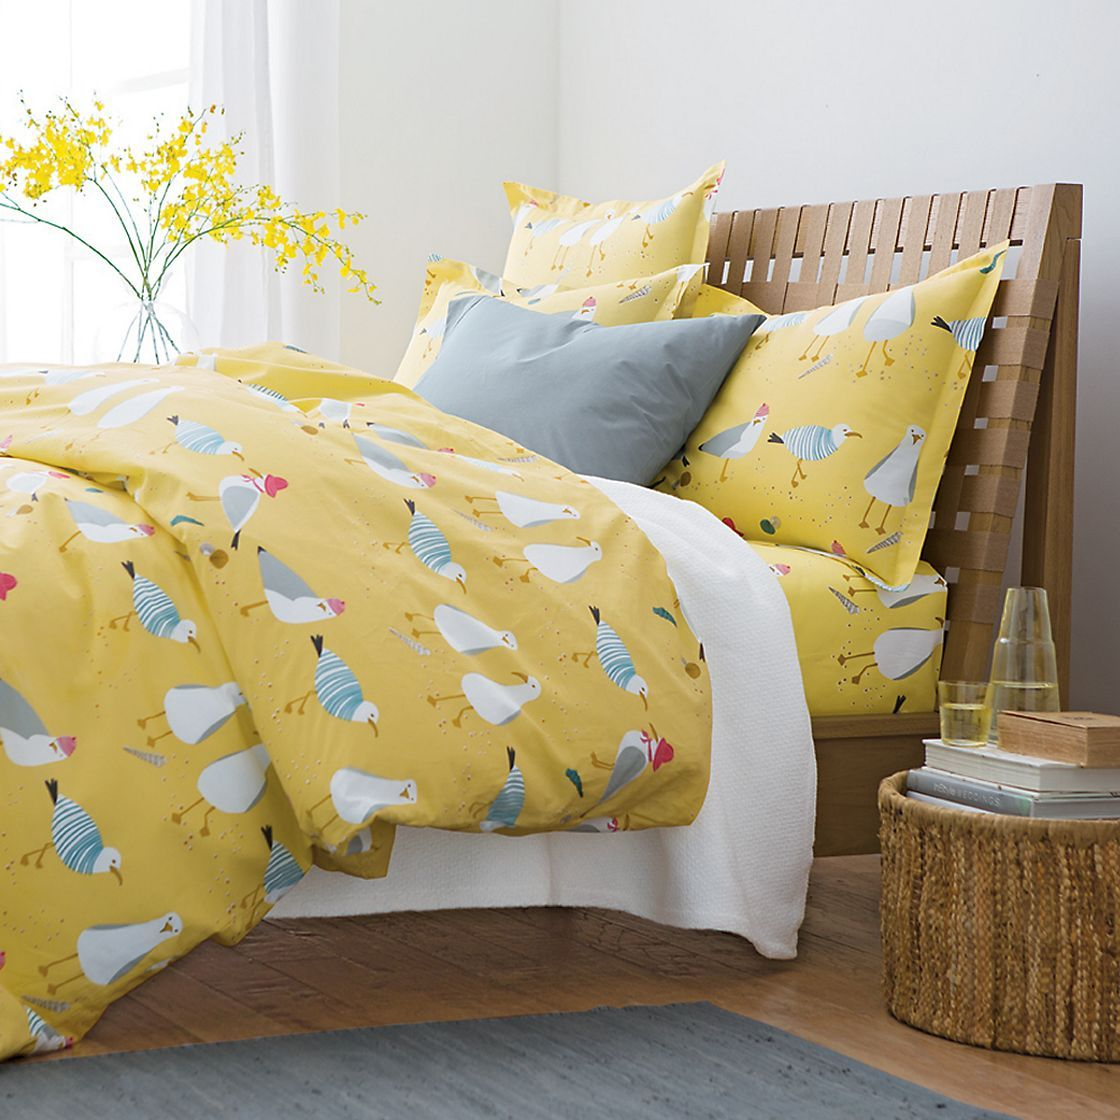 Beach Gull Percale Seagull Duvet Cover The Company Store